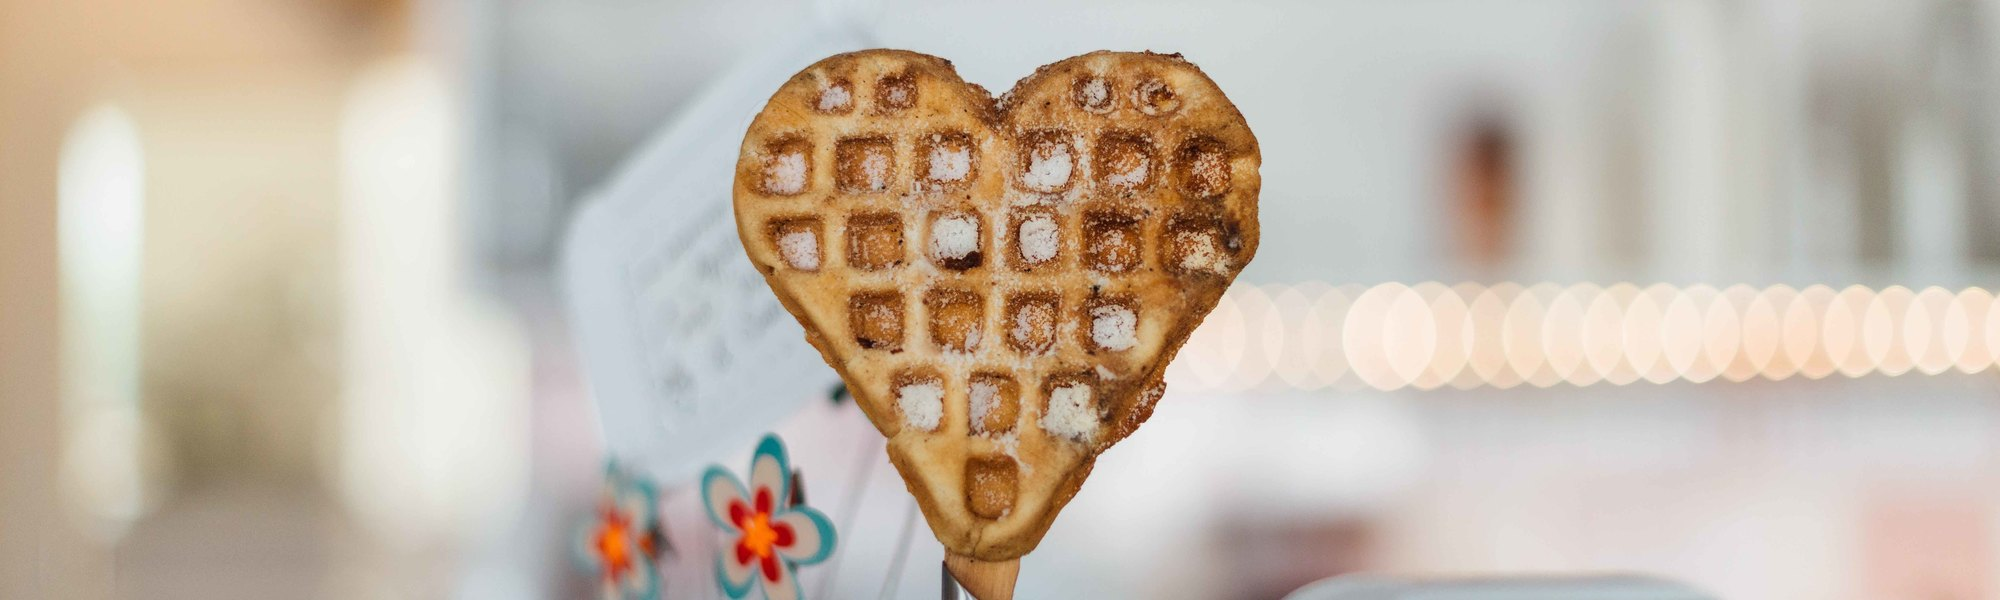 Waffle in the shape of a heart